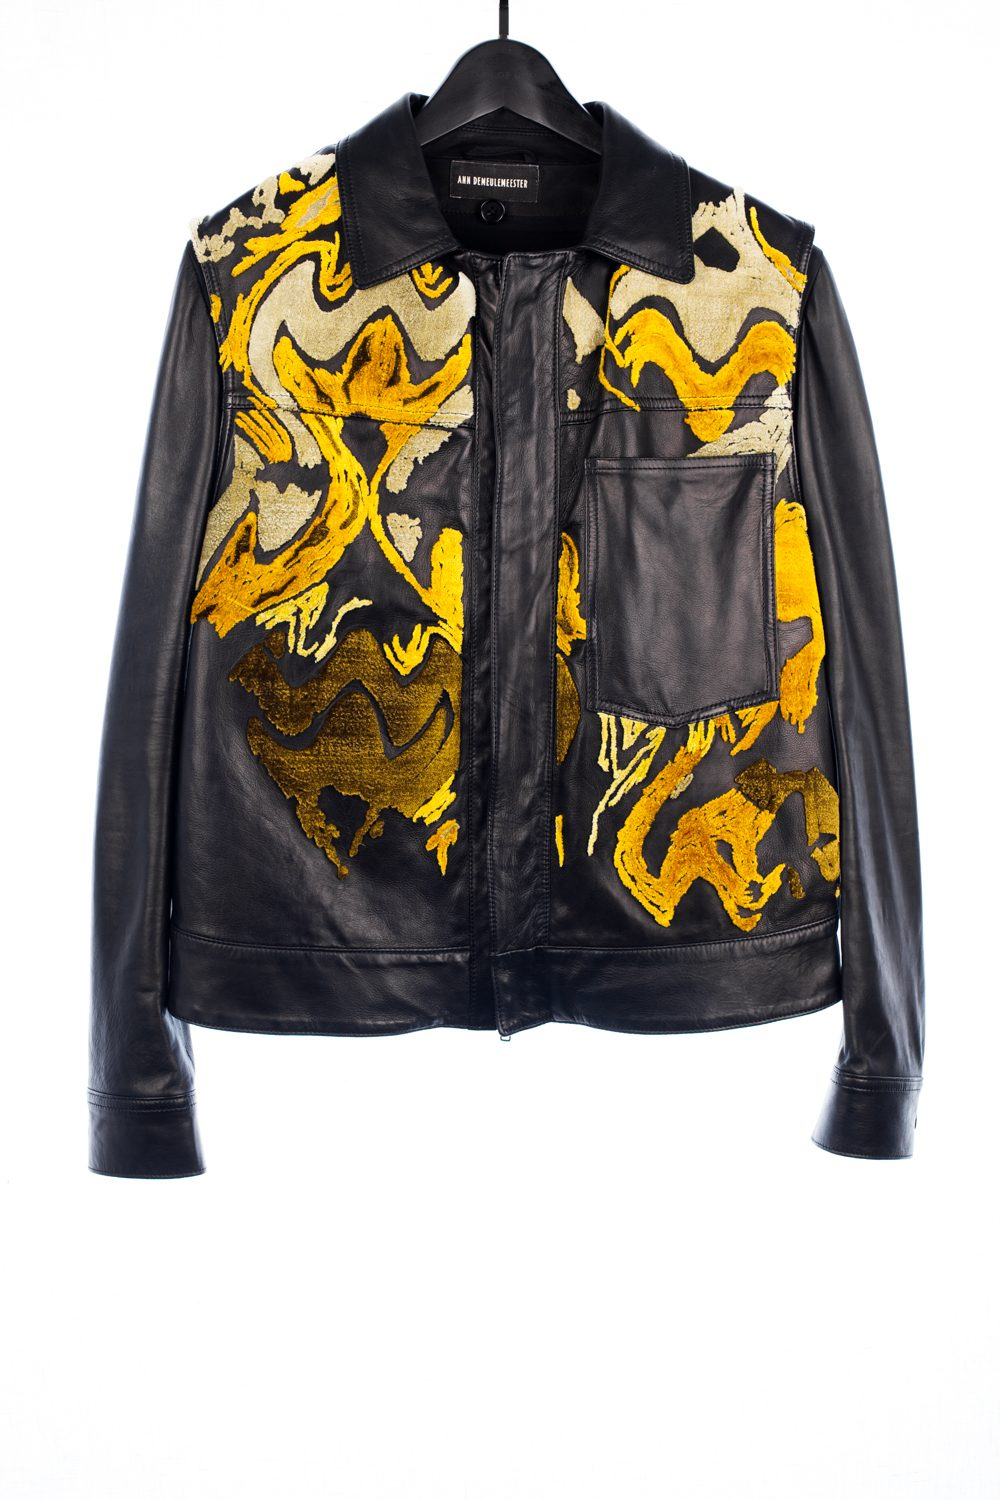 FW16 Abstract Appliquéd Leather Jacket